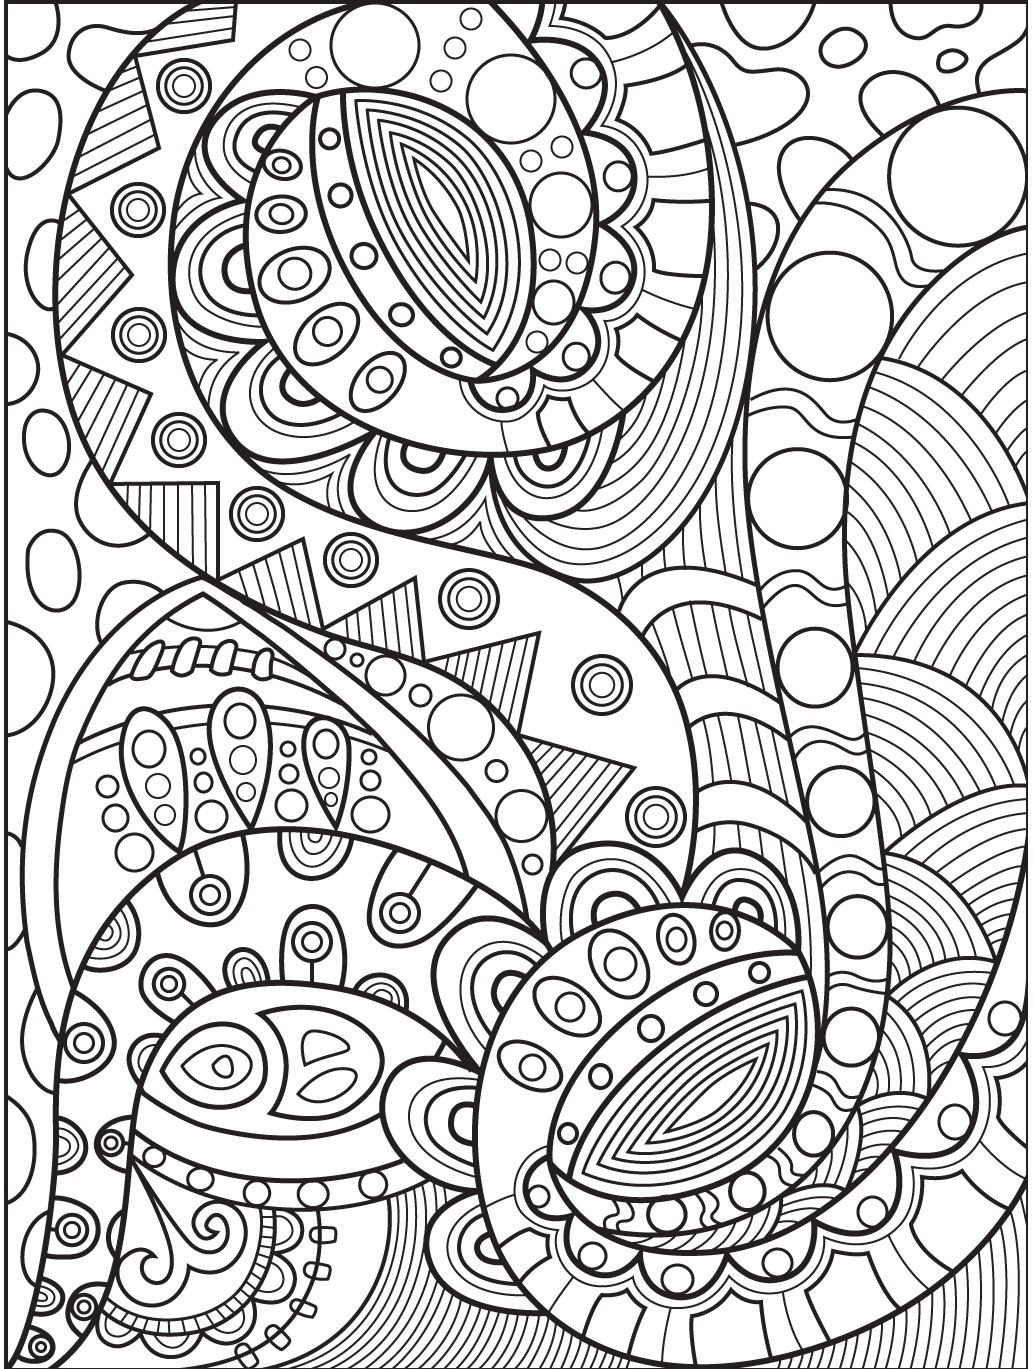 abstract coloring page # 1